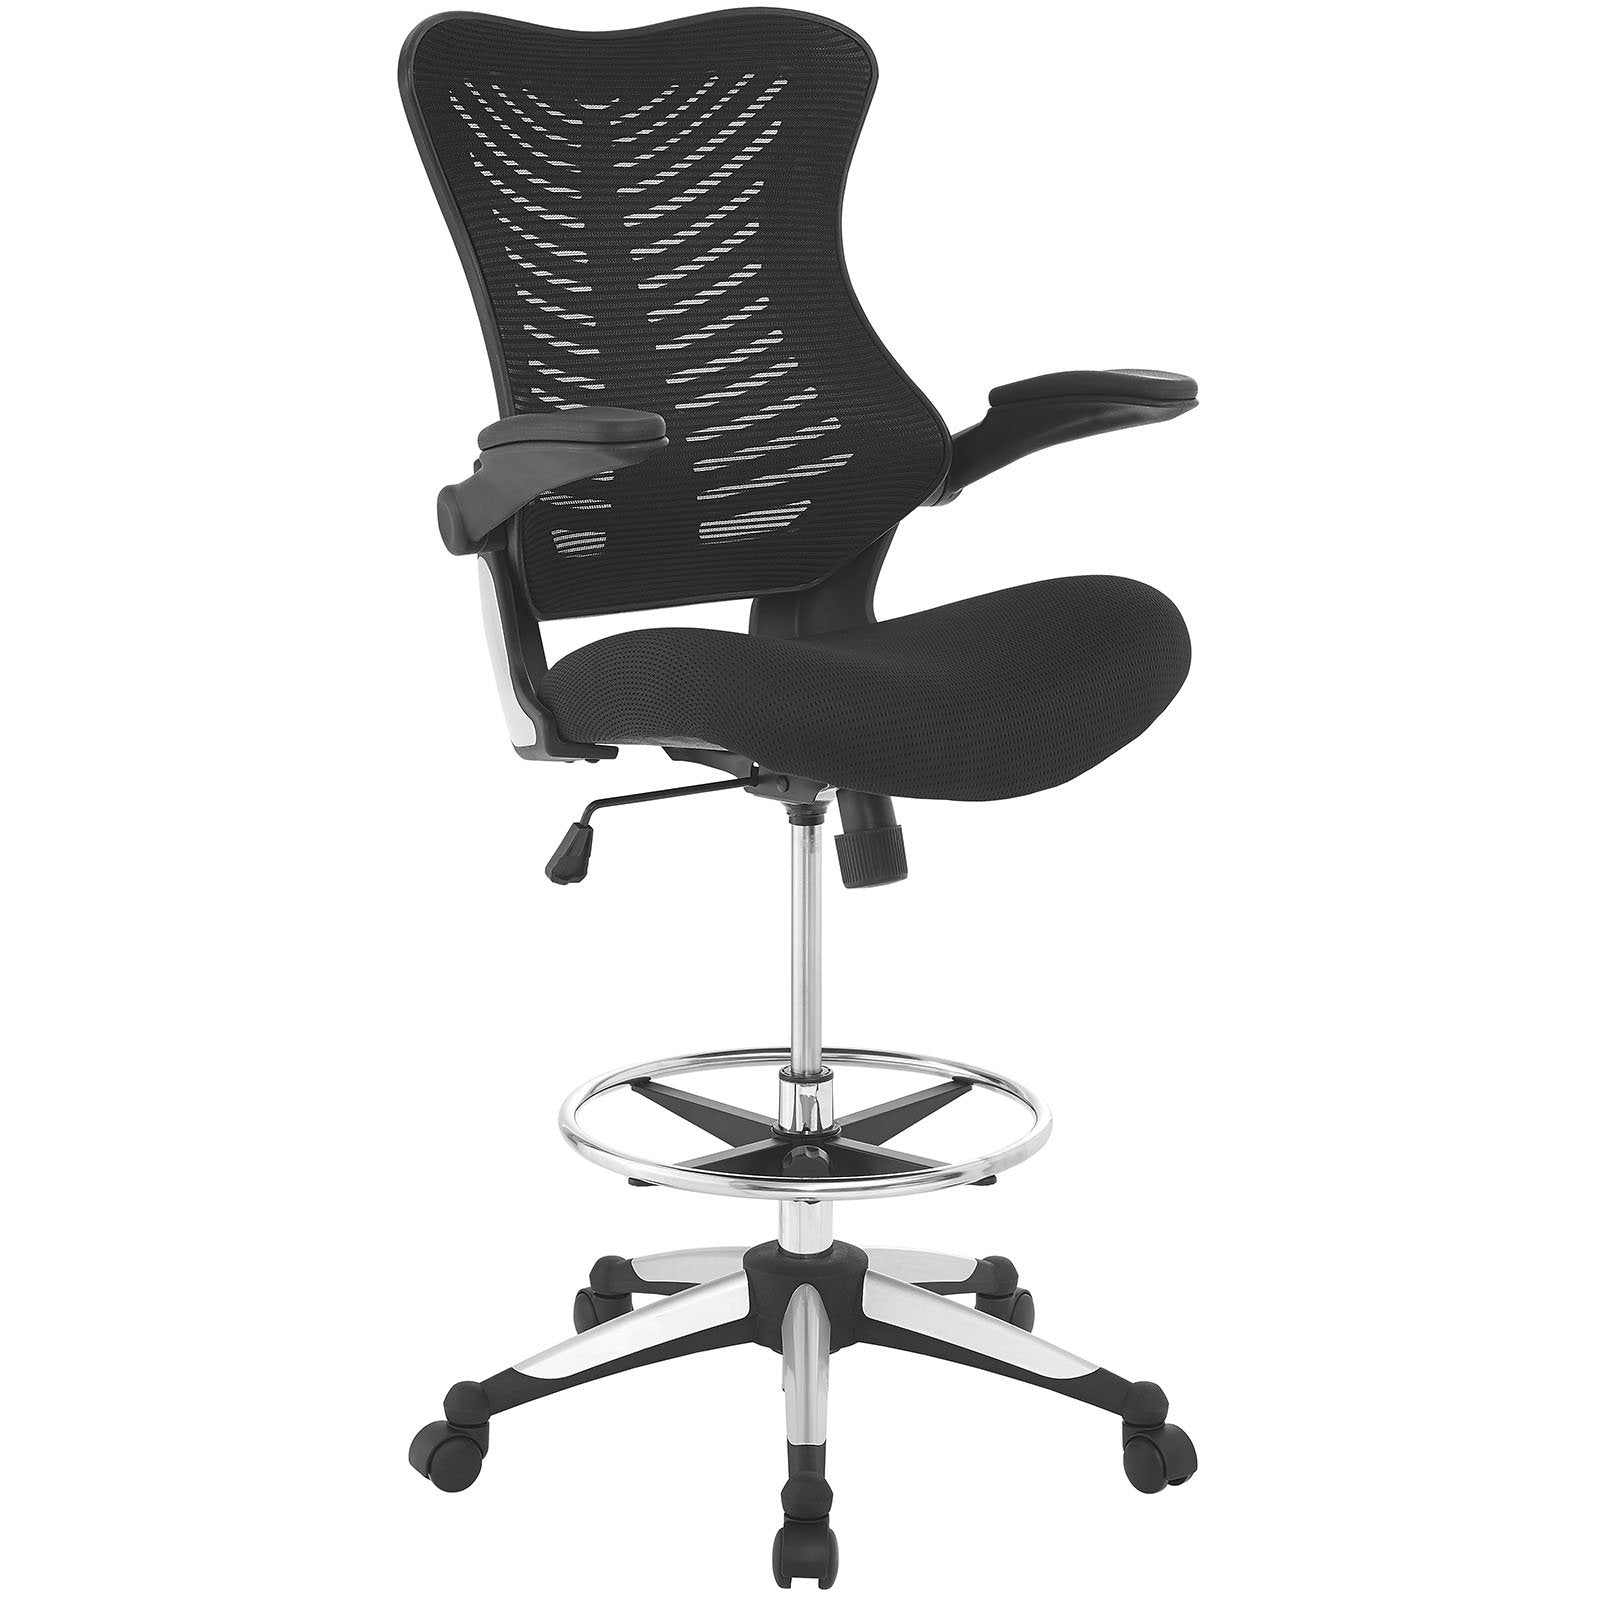 Modway Charge Drafting Chair - Reception Desk Chair - Drafting Stool with Flip-Up Arms in Black